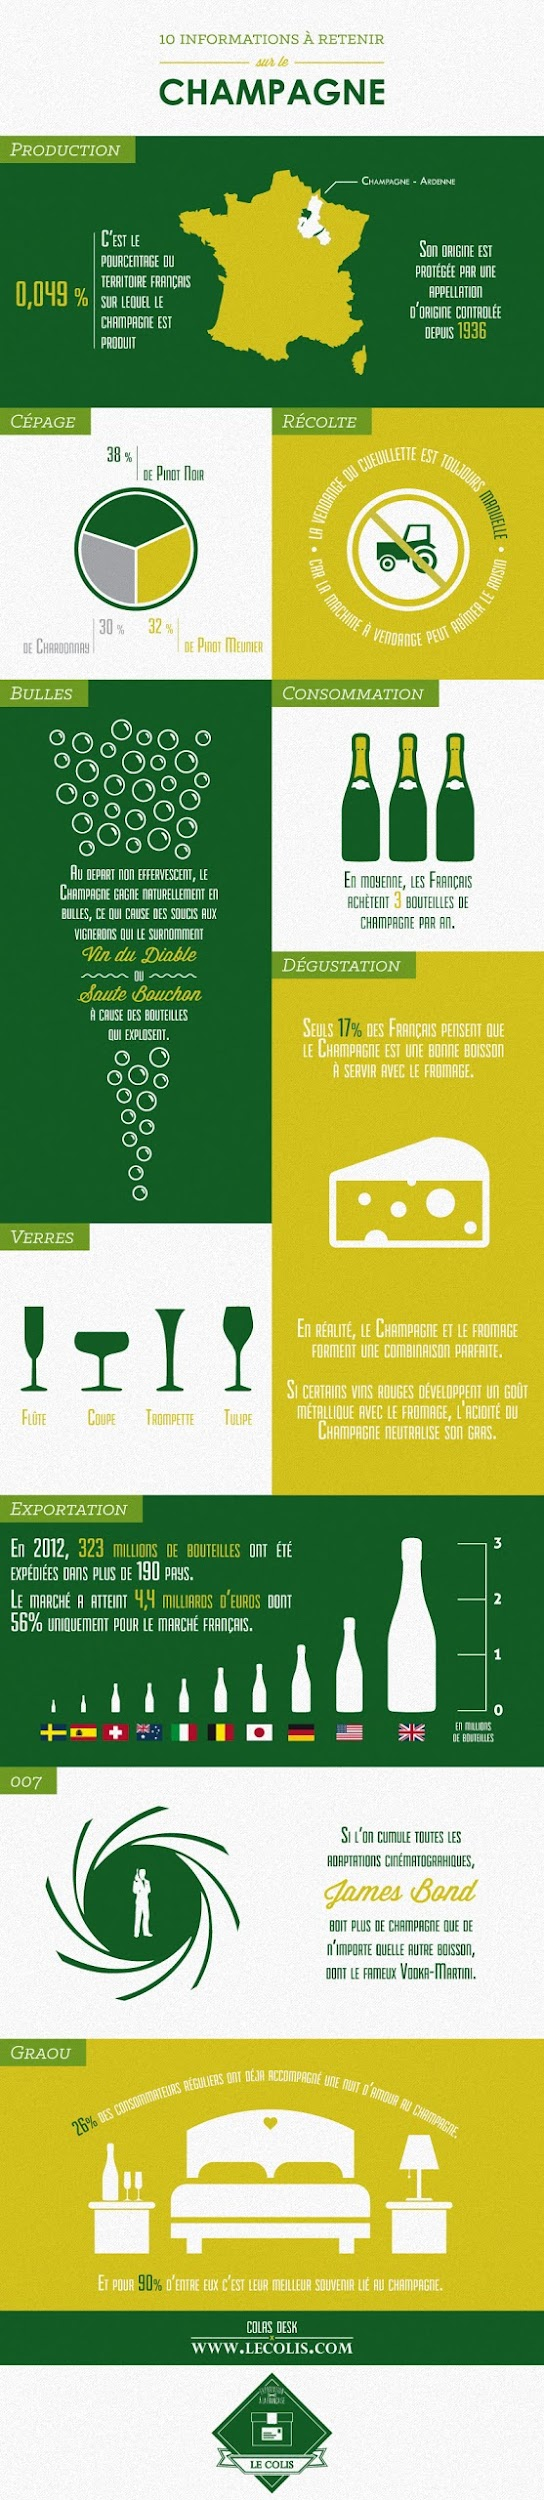 http://lesgourmands2-0.com/wp-content/uploads/2013/12/infographie-champagne.jpg